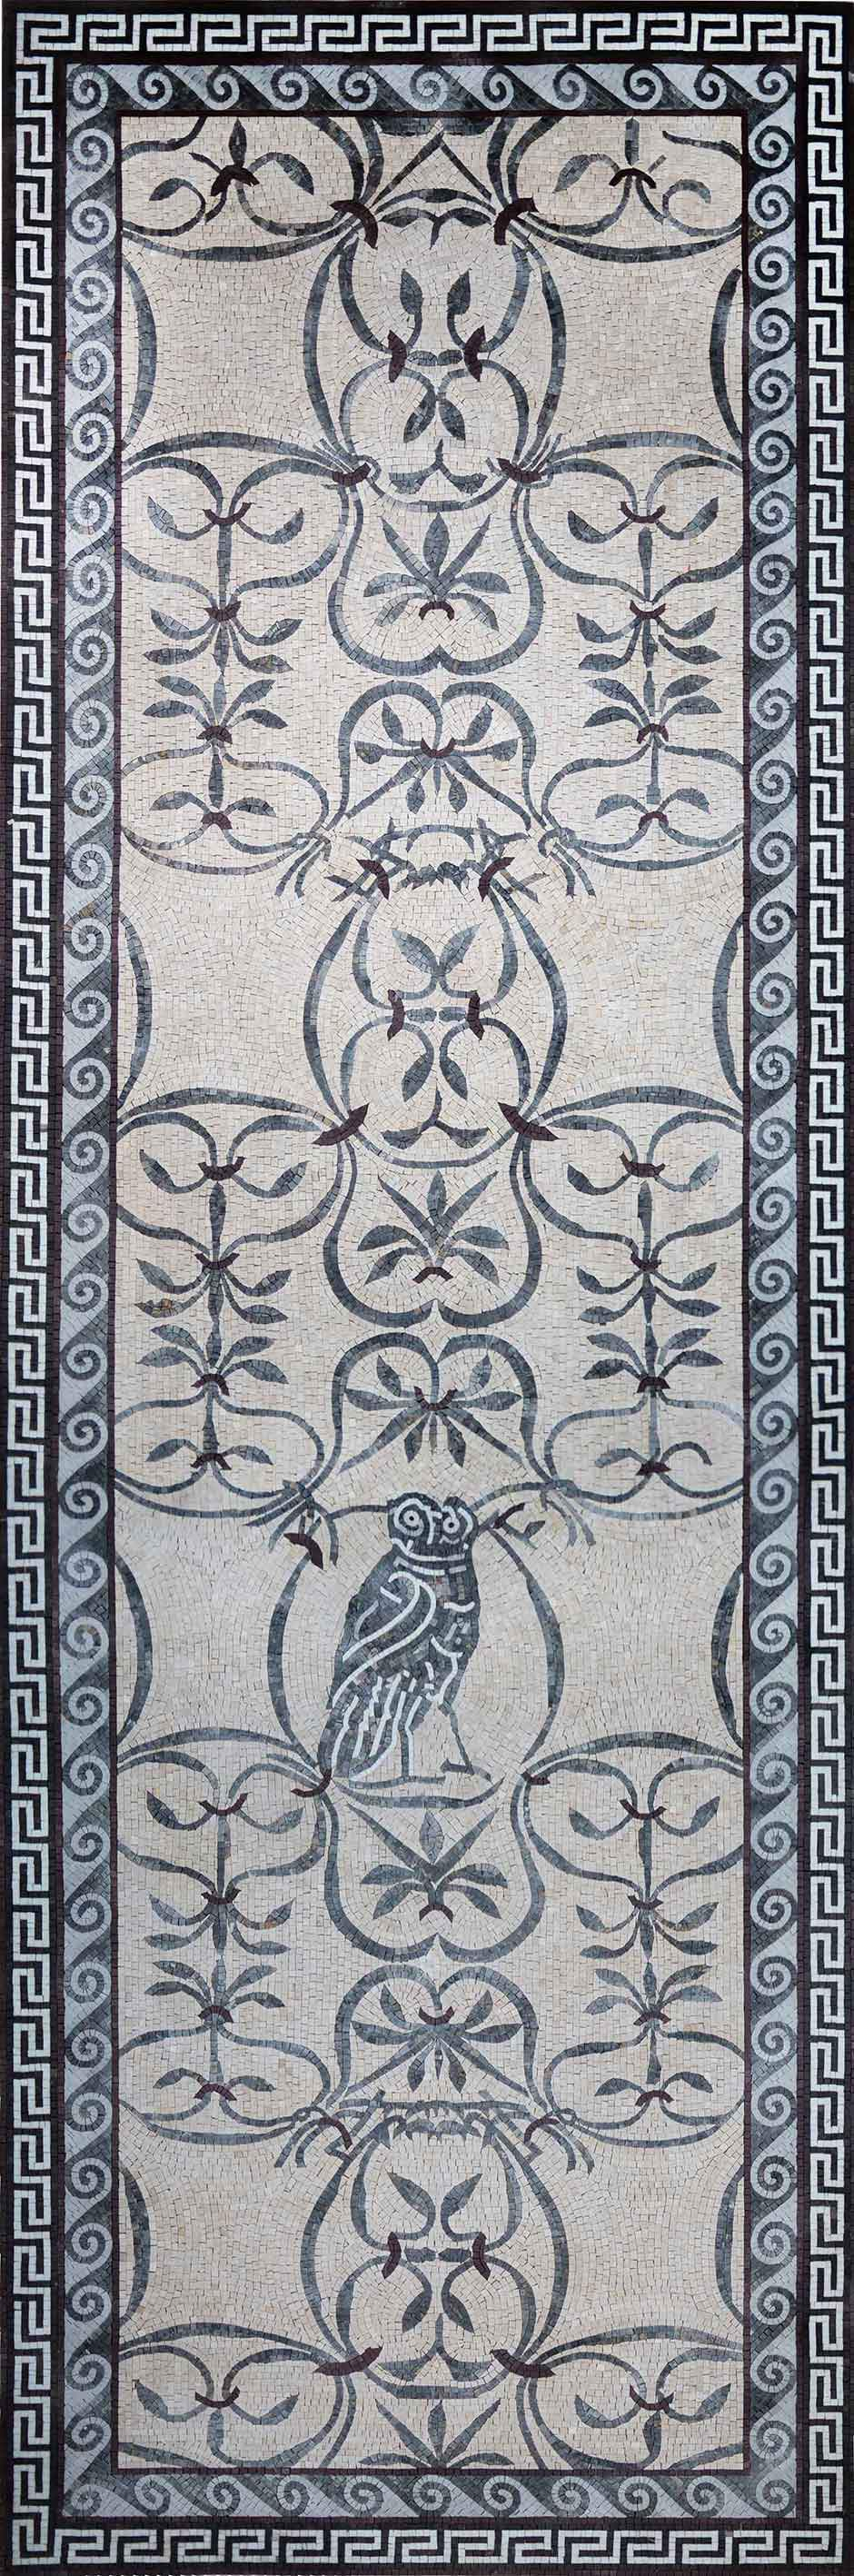 Owl & Floral Pattern Mosaic Wall Art Pic